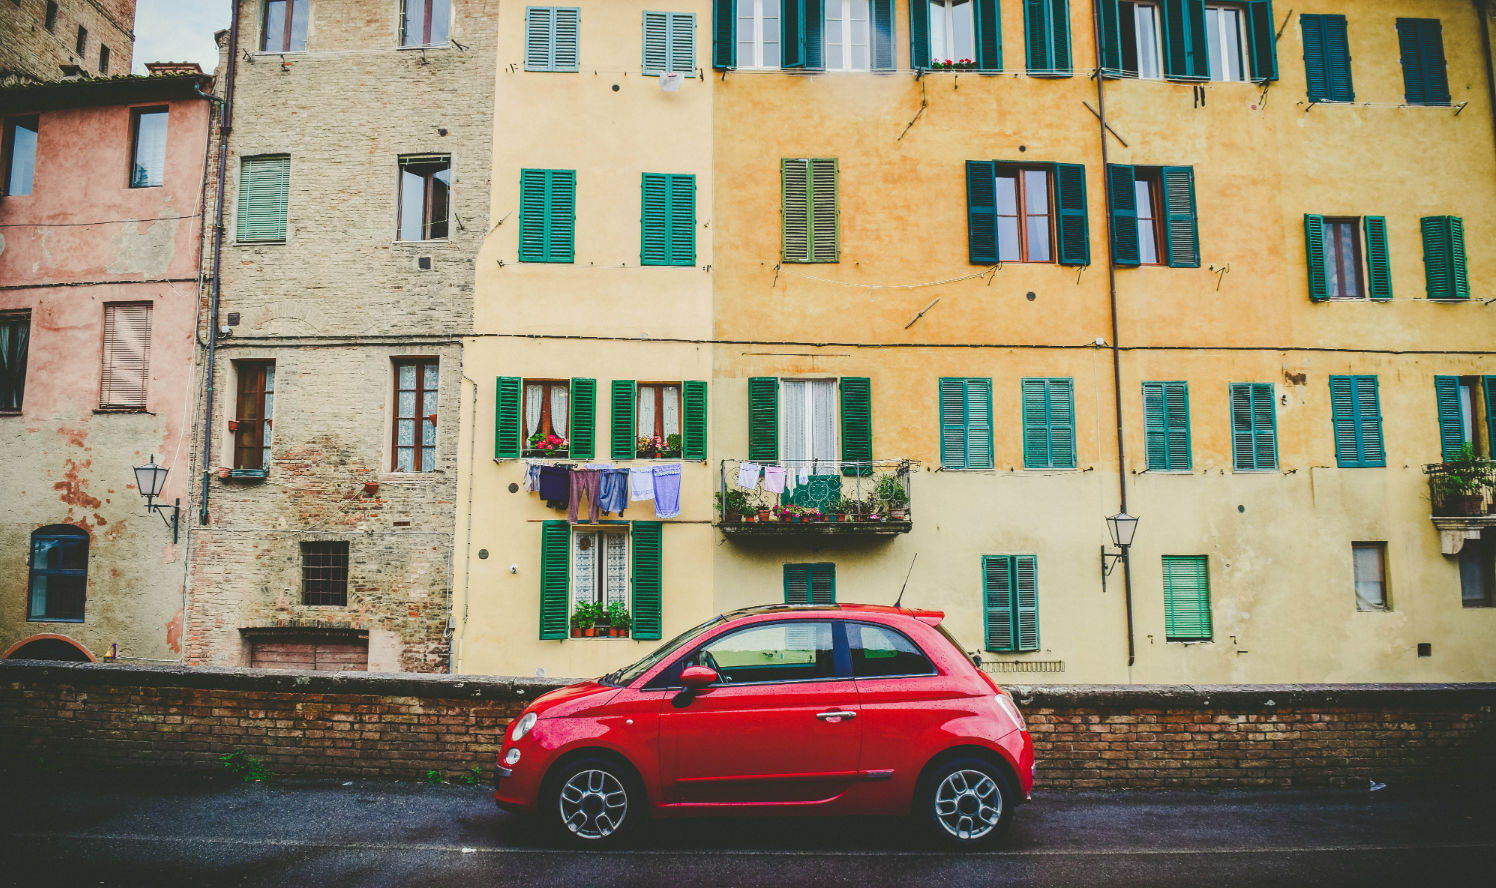 Get Cheap Flights To Italy & Check Out These Cities!